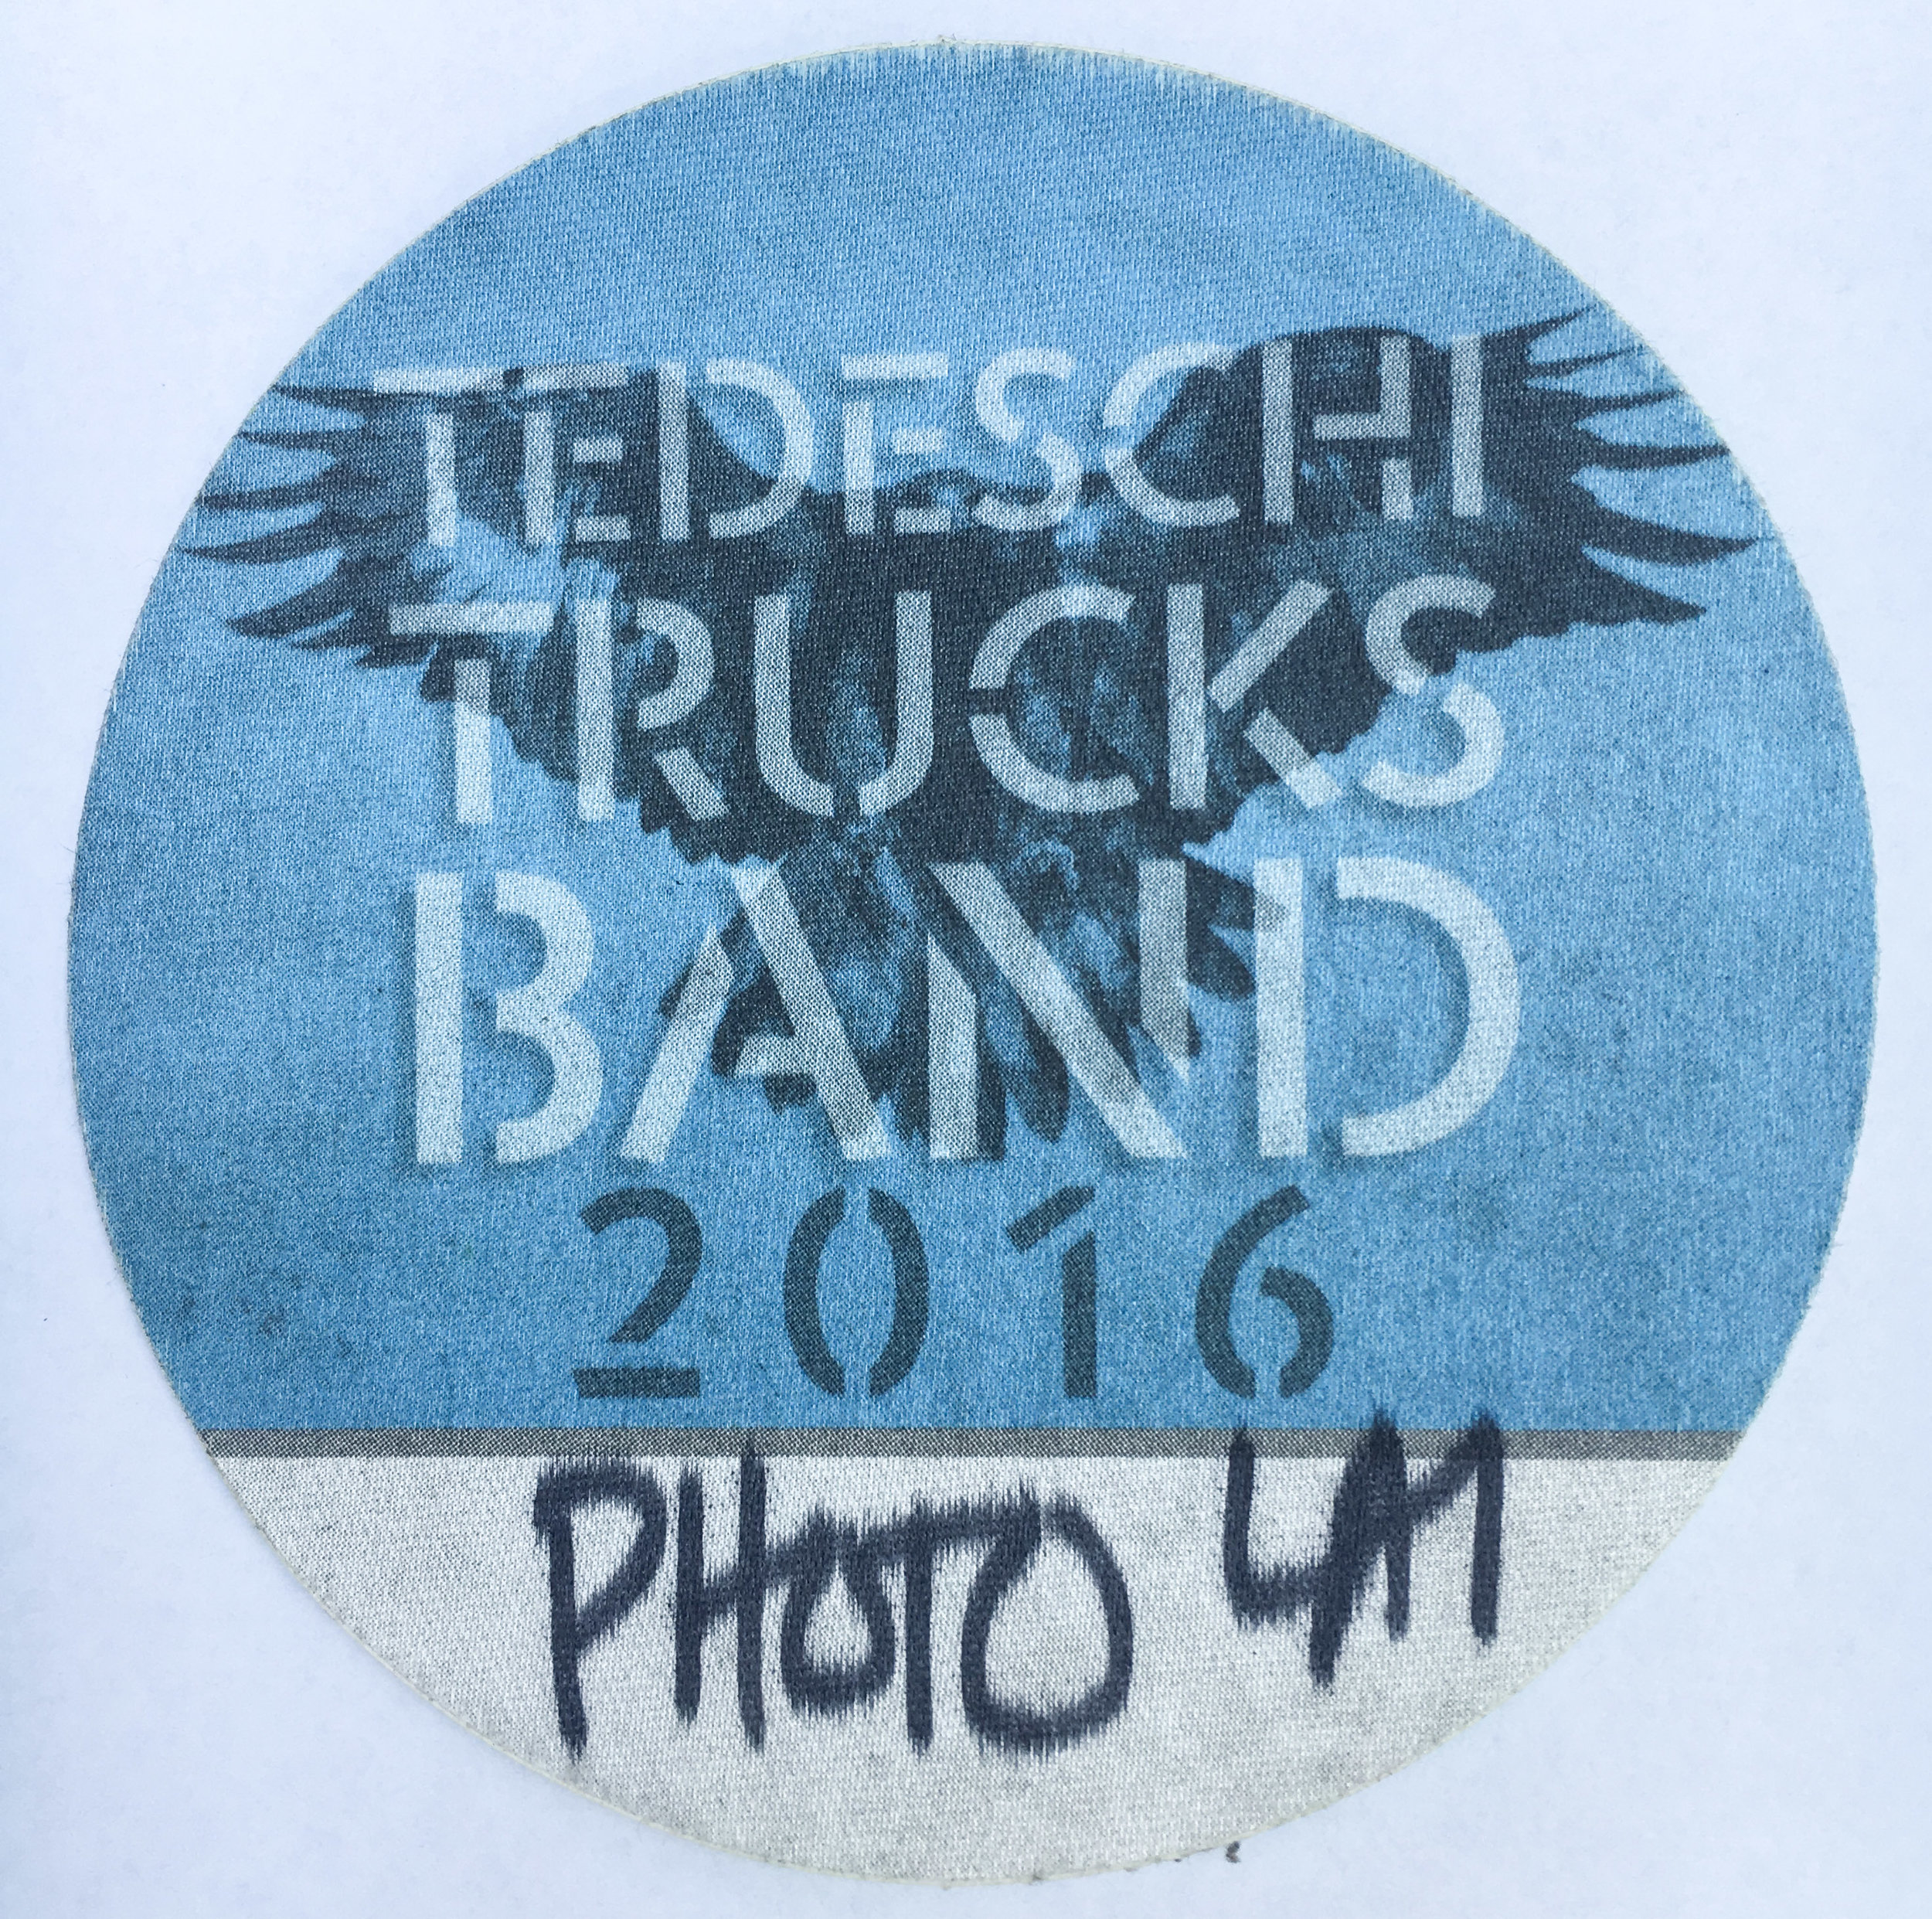 Tedeschi Trucks Band 9-16-2016